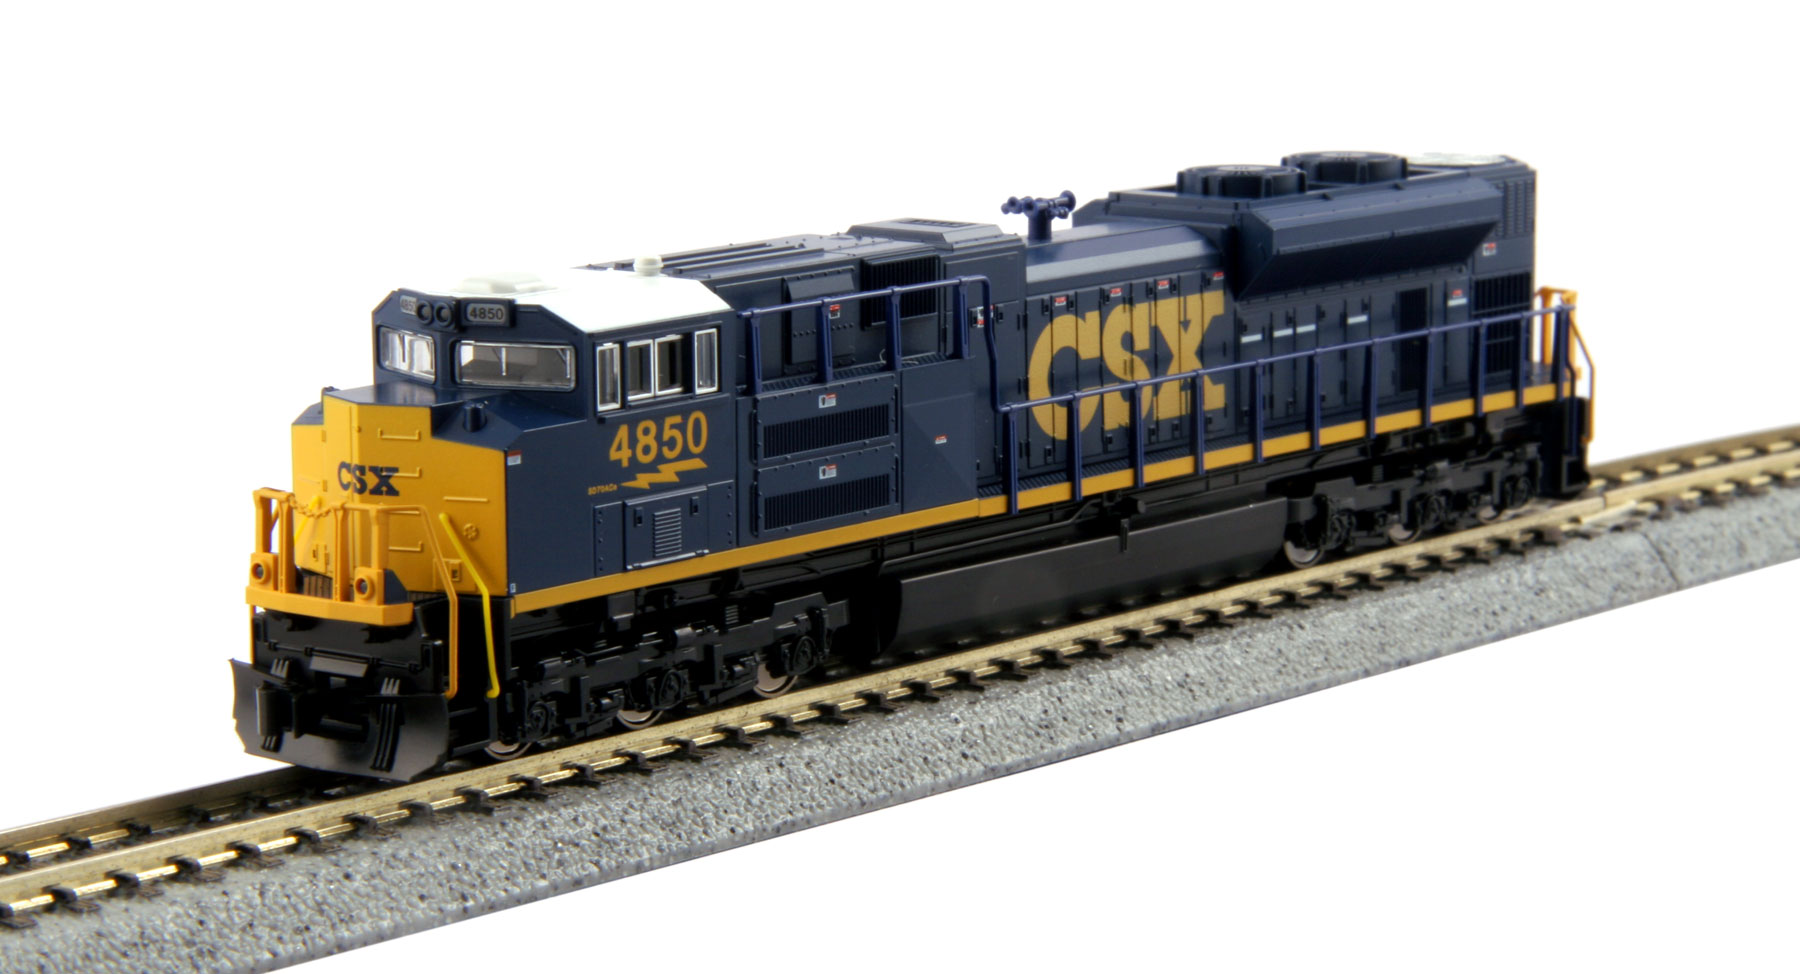 Kato 176-8437 N CSX EMD SD70ACe #4850 This is a Kato 176-8437 N Scale CSX EMD SD70ACe #4850. The SD70ACe is the latest in the line of EMD's 70 locomotives, an evolution of the SD70MAC, although its radiator design harkens more to that of the SD80/90 body. The SD70ACe has been designed to fit the latest EPA standards and regulations, and sports 4300 horsepower. The CSX Railroad has added 20 SD70ACe's to its rosters as of 2005, using them in service along the East coast from Florida all the way up into Quebec and Ontario. Model Features: Powerful Kato mechanism powered by a 5-pole flywheel motor and featuring a 9 3/4 minimum turning radius.Directional Headlight and illuminated, preprinted numberboards. Illuminated ditch lights.DCC Friendly mechanism ready for drop-in decoder installation.Condition: Factory New (C-9All original; unused; factory rubs and evidence of handling, shipping and factory test run.Standards for all toy train related accessory items apply to the visual appearance of the item and do not consider the operating functionality of the equipment.Condition and Grading Standards are subjective, at best, and are intended to act as a guide. )Operational Status: FunctionalThis item is brand new from the factory.Original Box: Yes (P-9May have store stamps and price tags. Has inner liners.)Manufacturer: KatoModel Number: 176-8437Road Name: CSXMSRP: $130.00Scale/Era: N ScaleModel Type: Diesel LocoAvailability: Ships in 2 Business Days!The Trainz SKU for this item is P12170803. Track: 12170803 - No Location Assigned - 001 - TrainzAuctionGroup00UNK - TDIDUNK